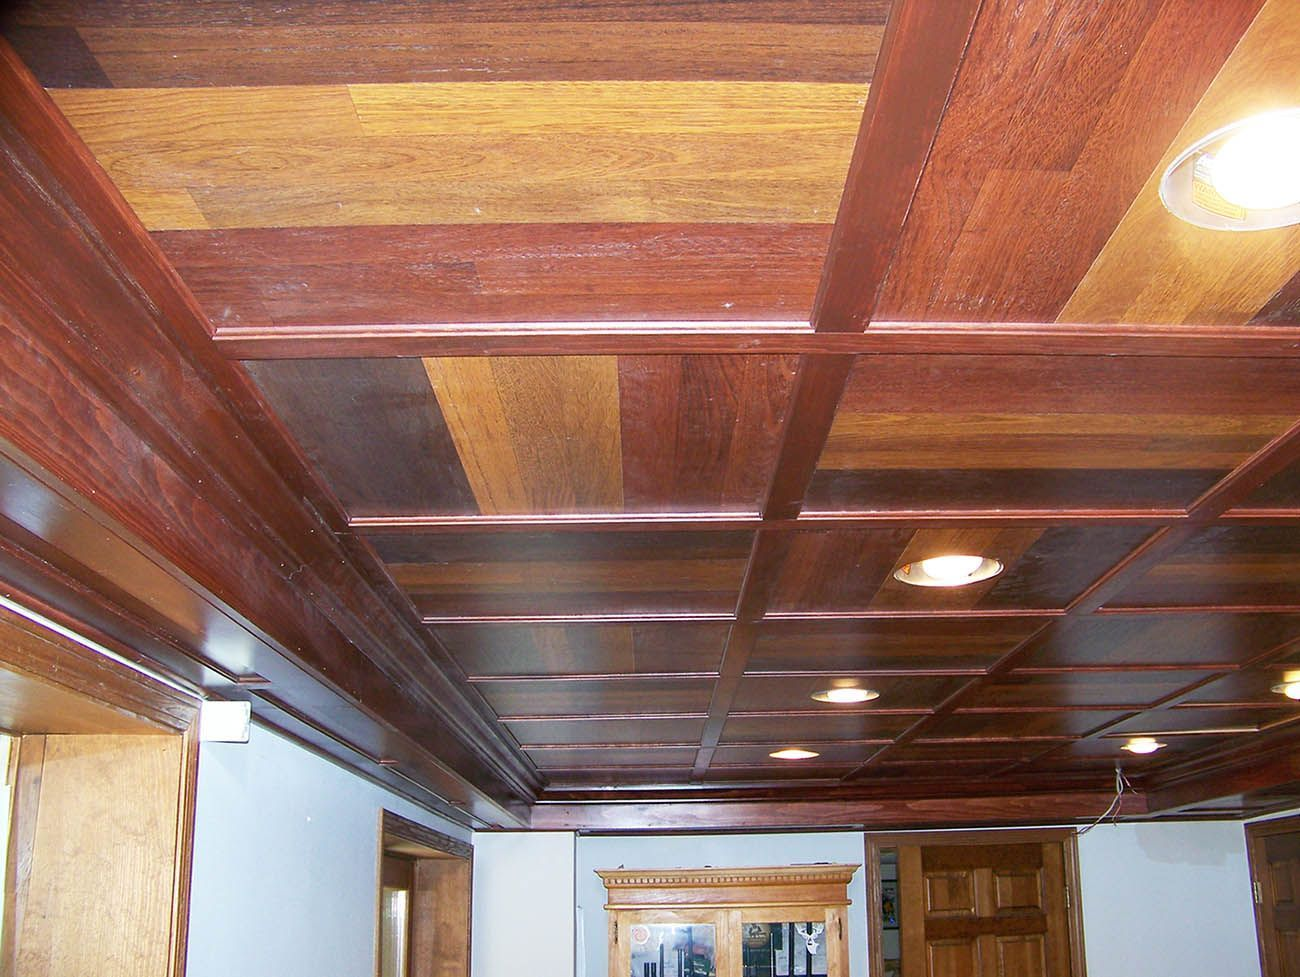 Best Cheap Basement Ceiling Ideas When It Comes To Finishing Off Your Basement And Finding The Ri With Images Drop Ceiling Basement Ceiling Tiles Basement